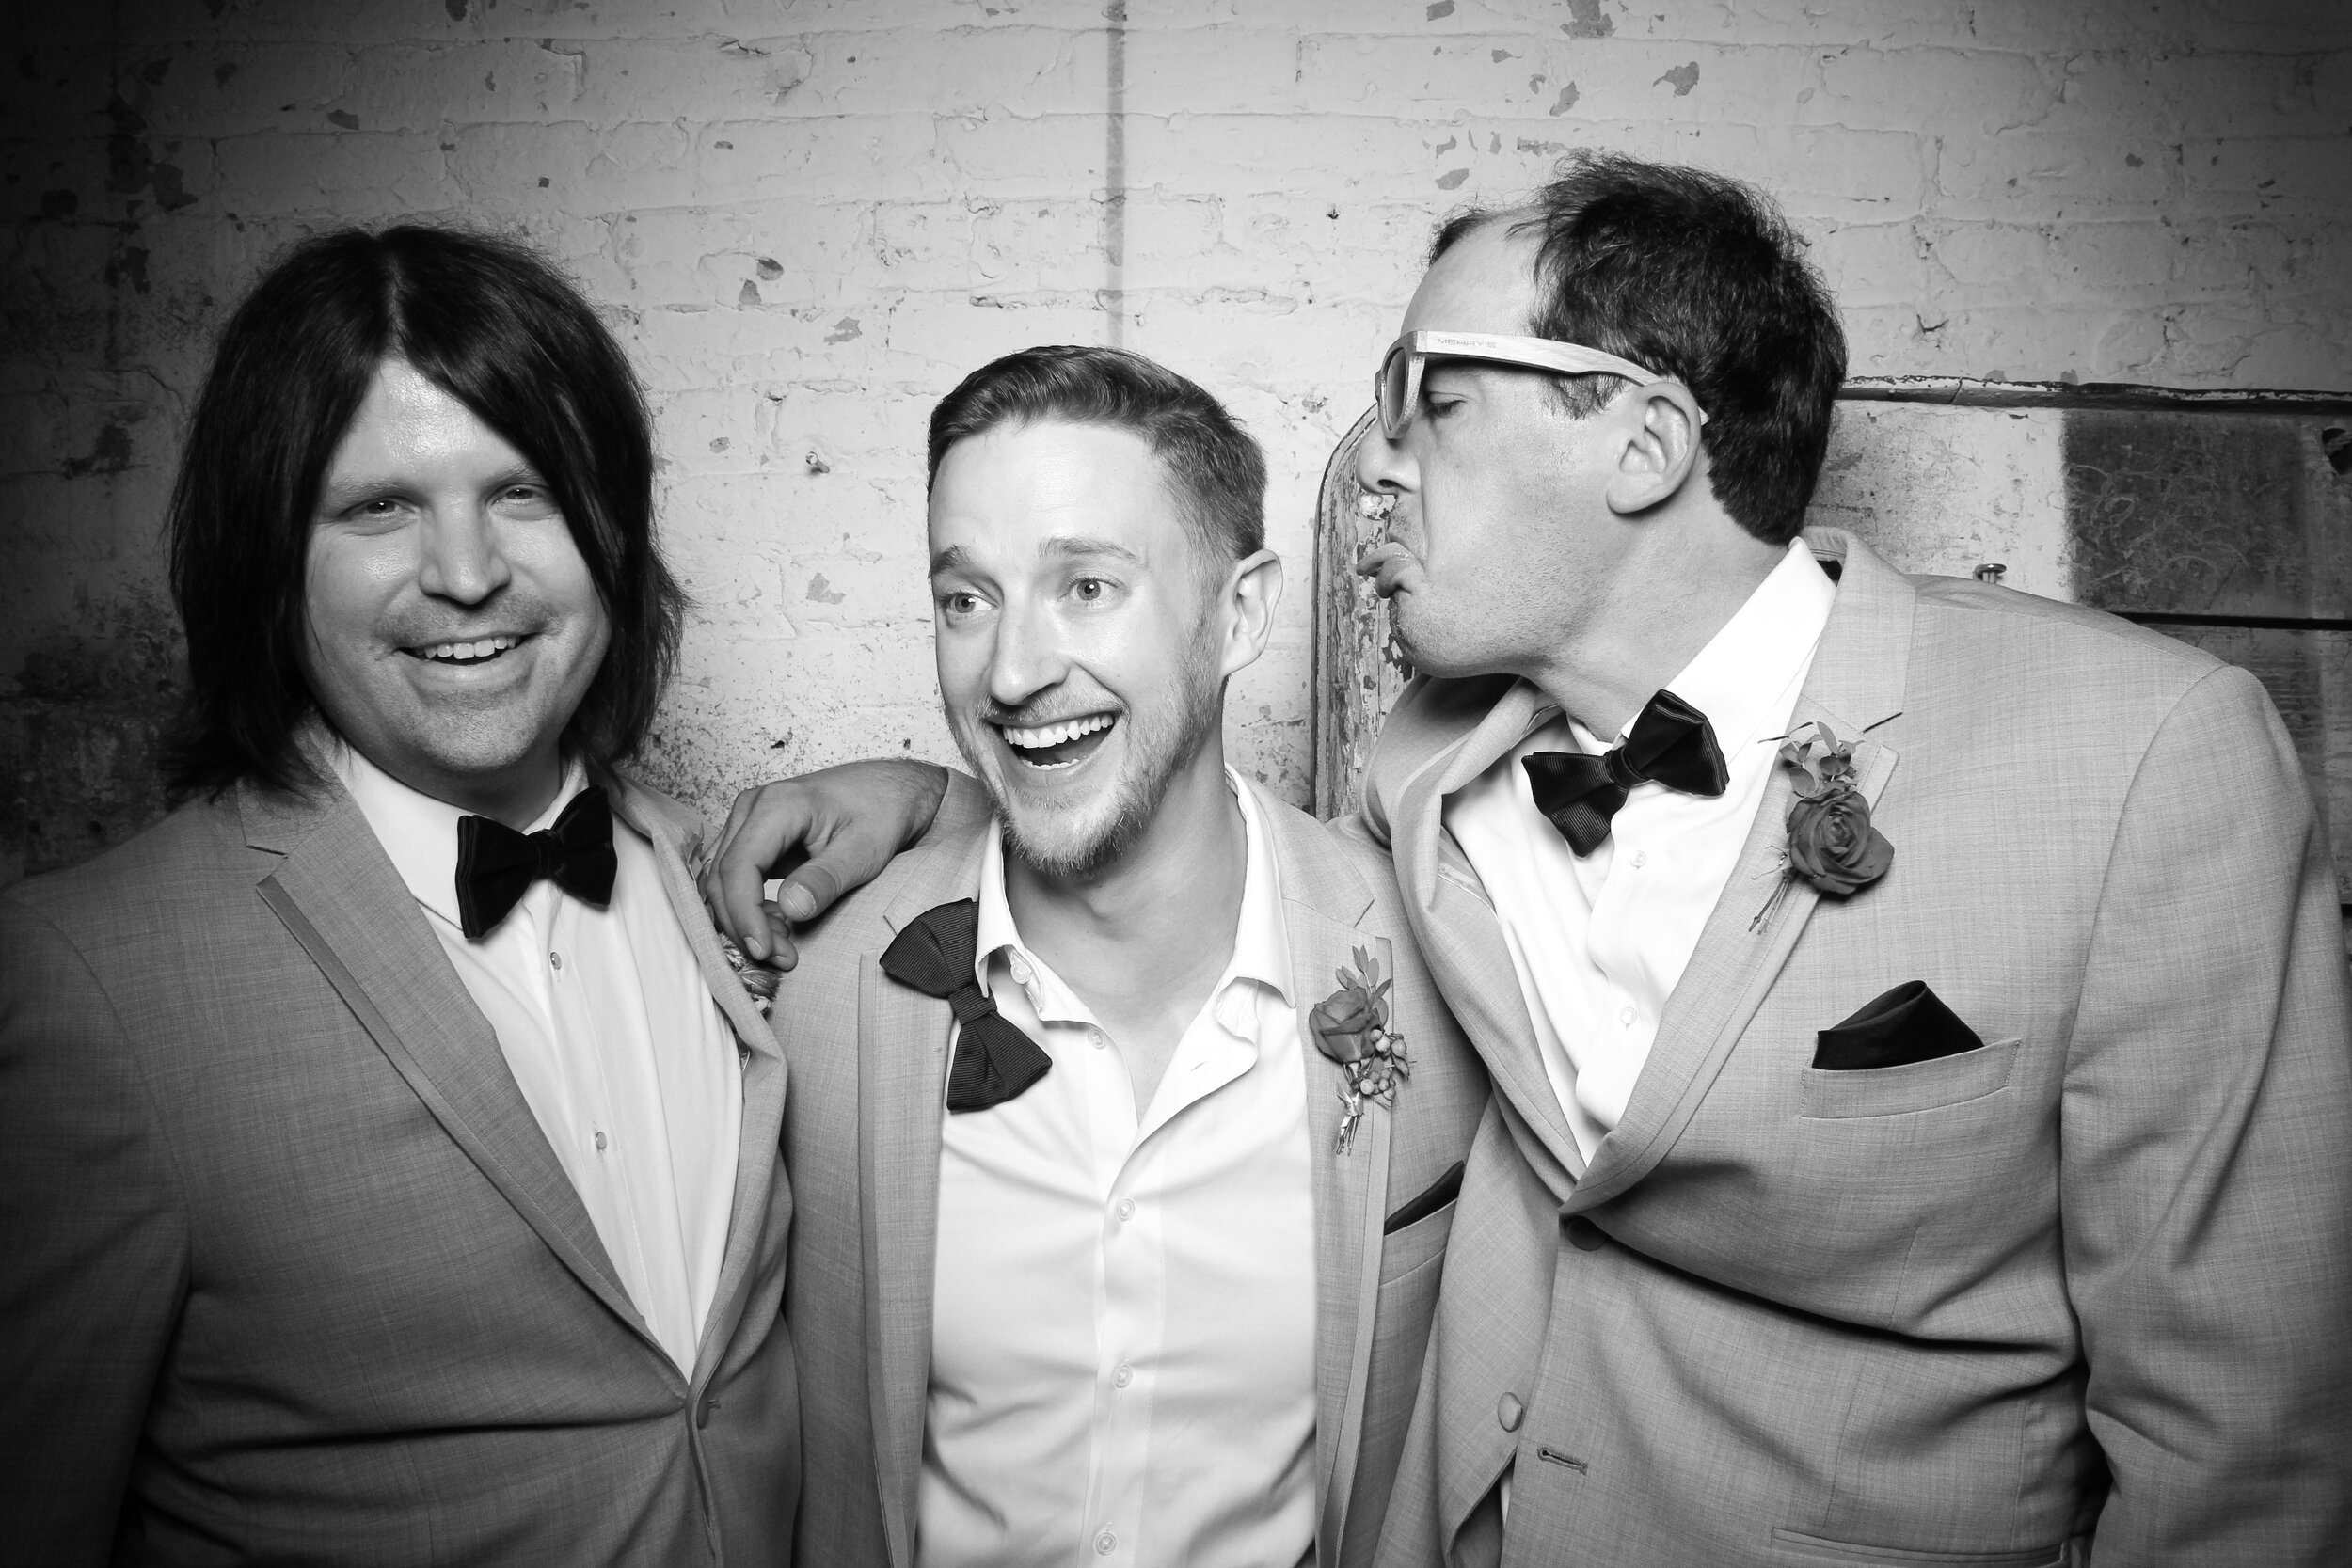 Chicago_Vintage_Wedding_Photobooth_Joinery_28.jpg